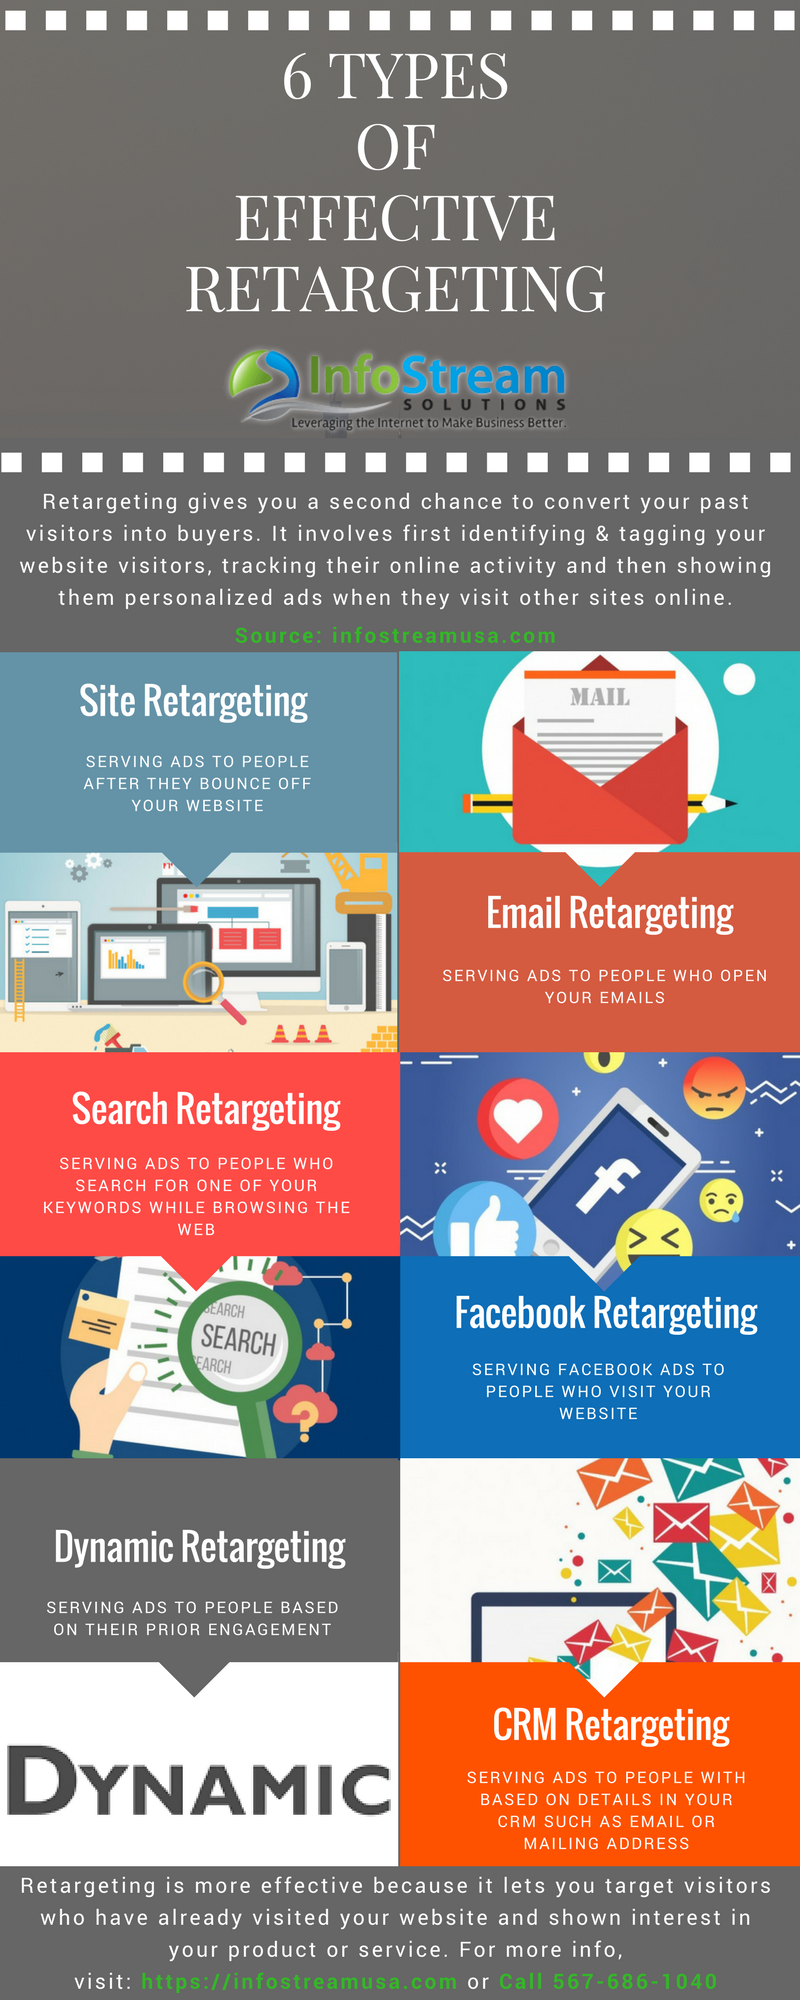 6 Types of Effective Retargeting